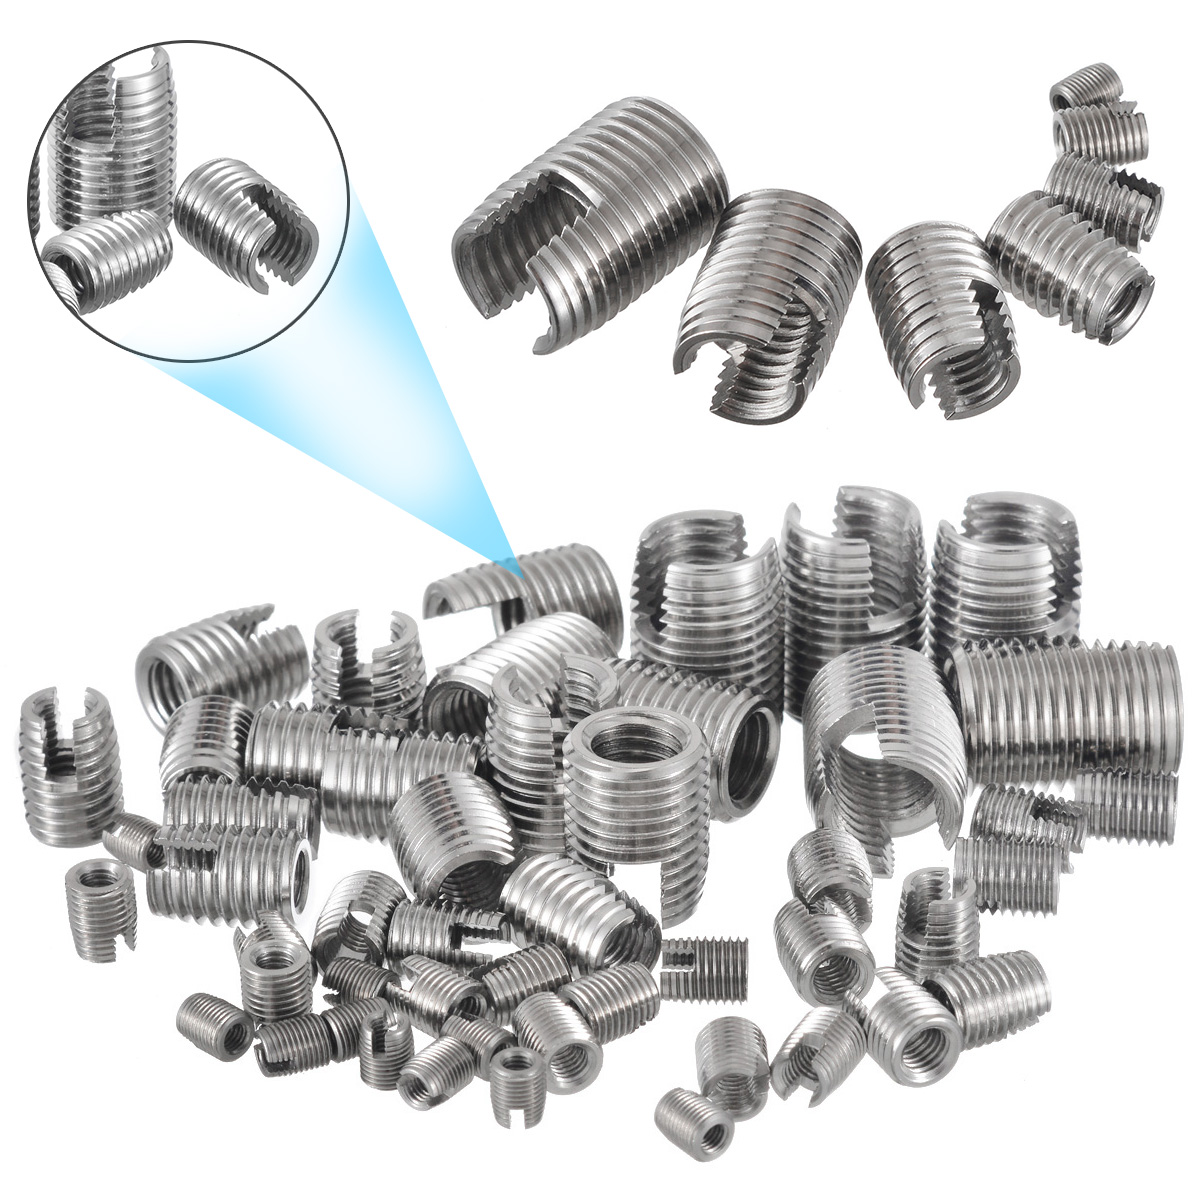 50pcs Set Silver Stainless Steel Thread Repair Insert Kit M3 M4 M5 M6 M8 M10 M12 Helical Insert Self Tapping Slotted Screw Threaded Insert Aliexpress